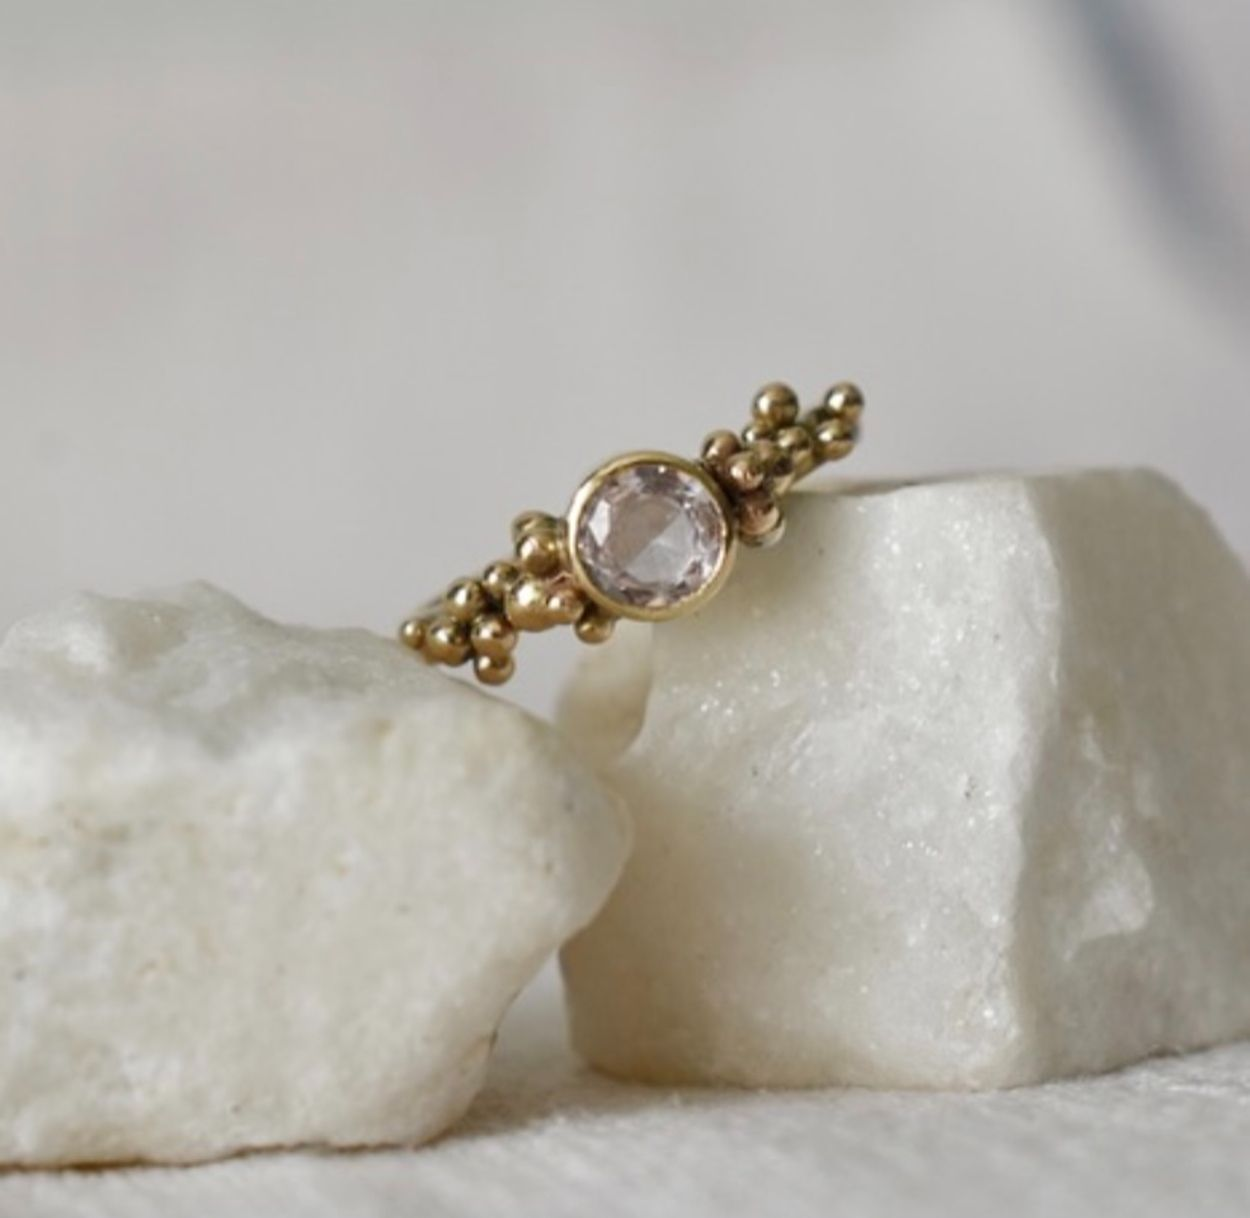 Recycled 9ct Gold and Pink Sapphire Ring By The Sylverling Workshop 13.jpg